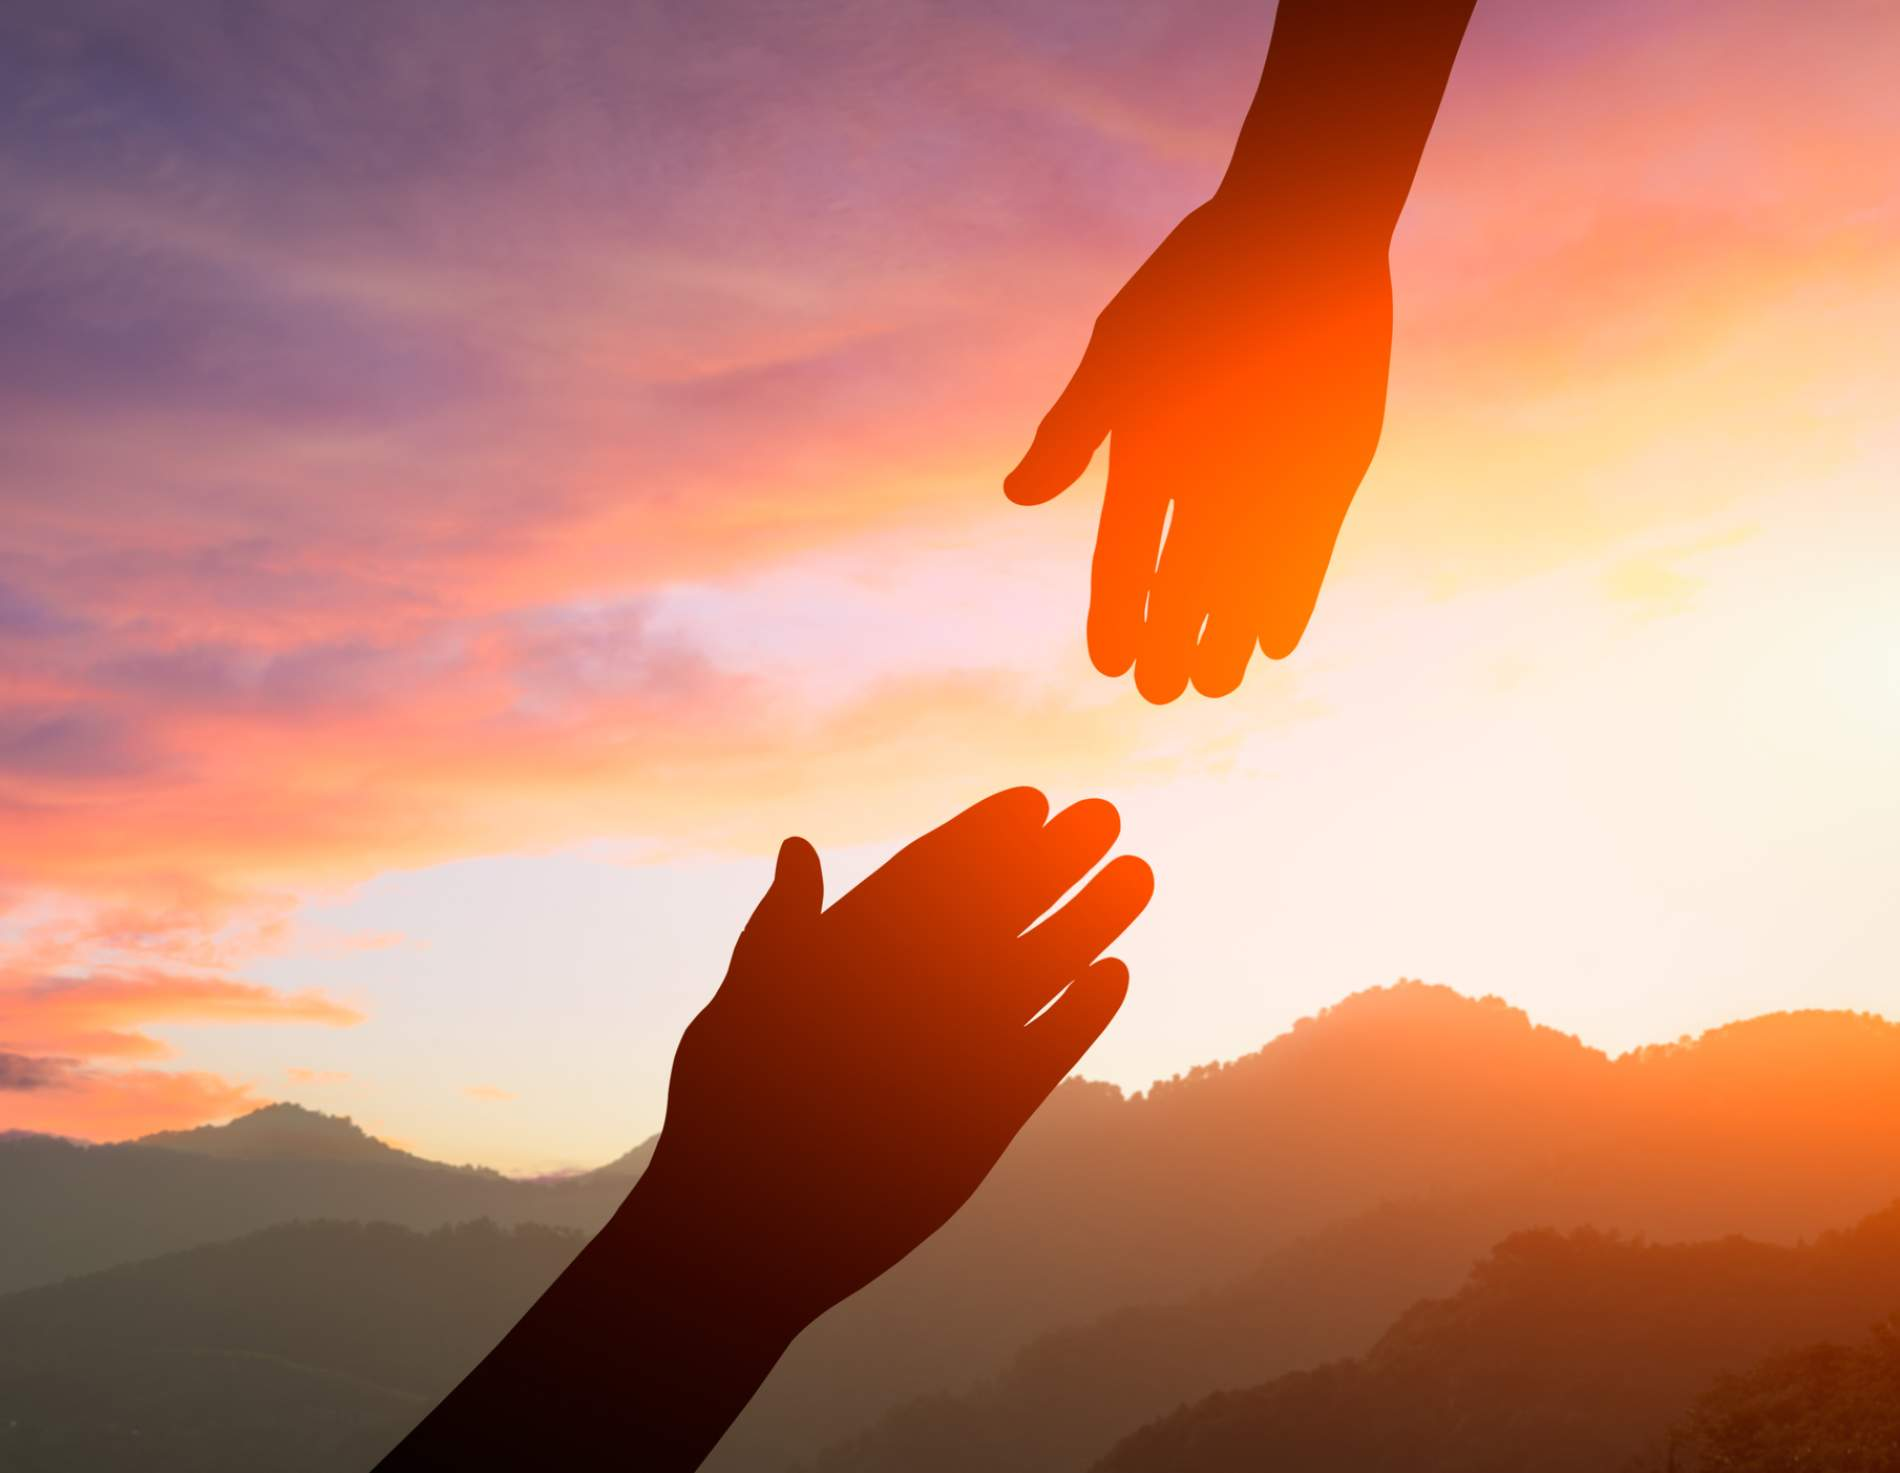 Hands reaching towards each other in front of a sunset